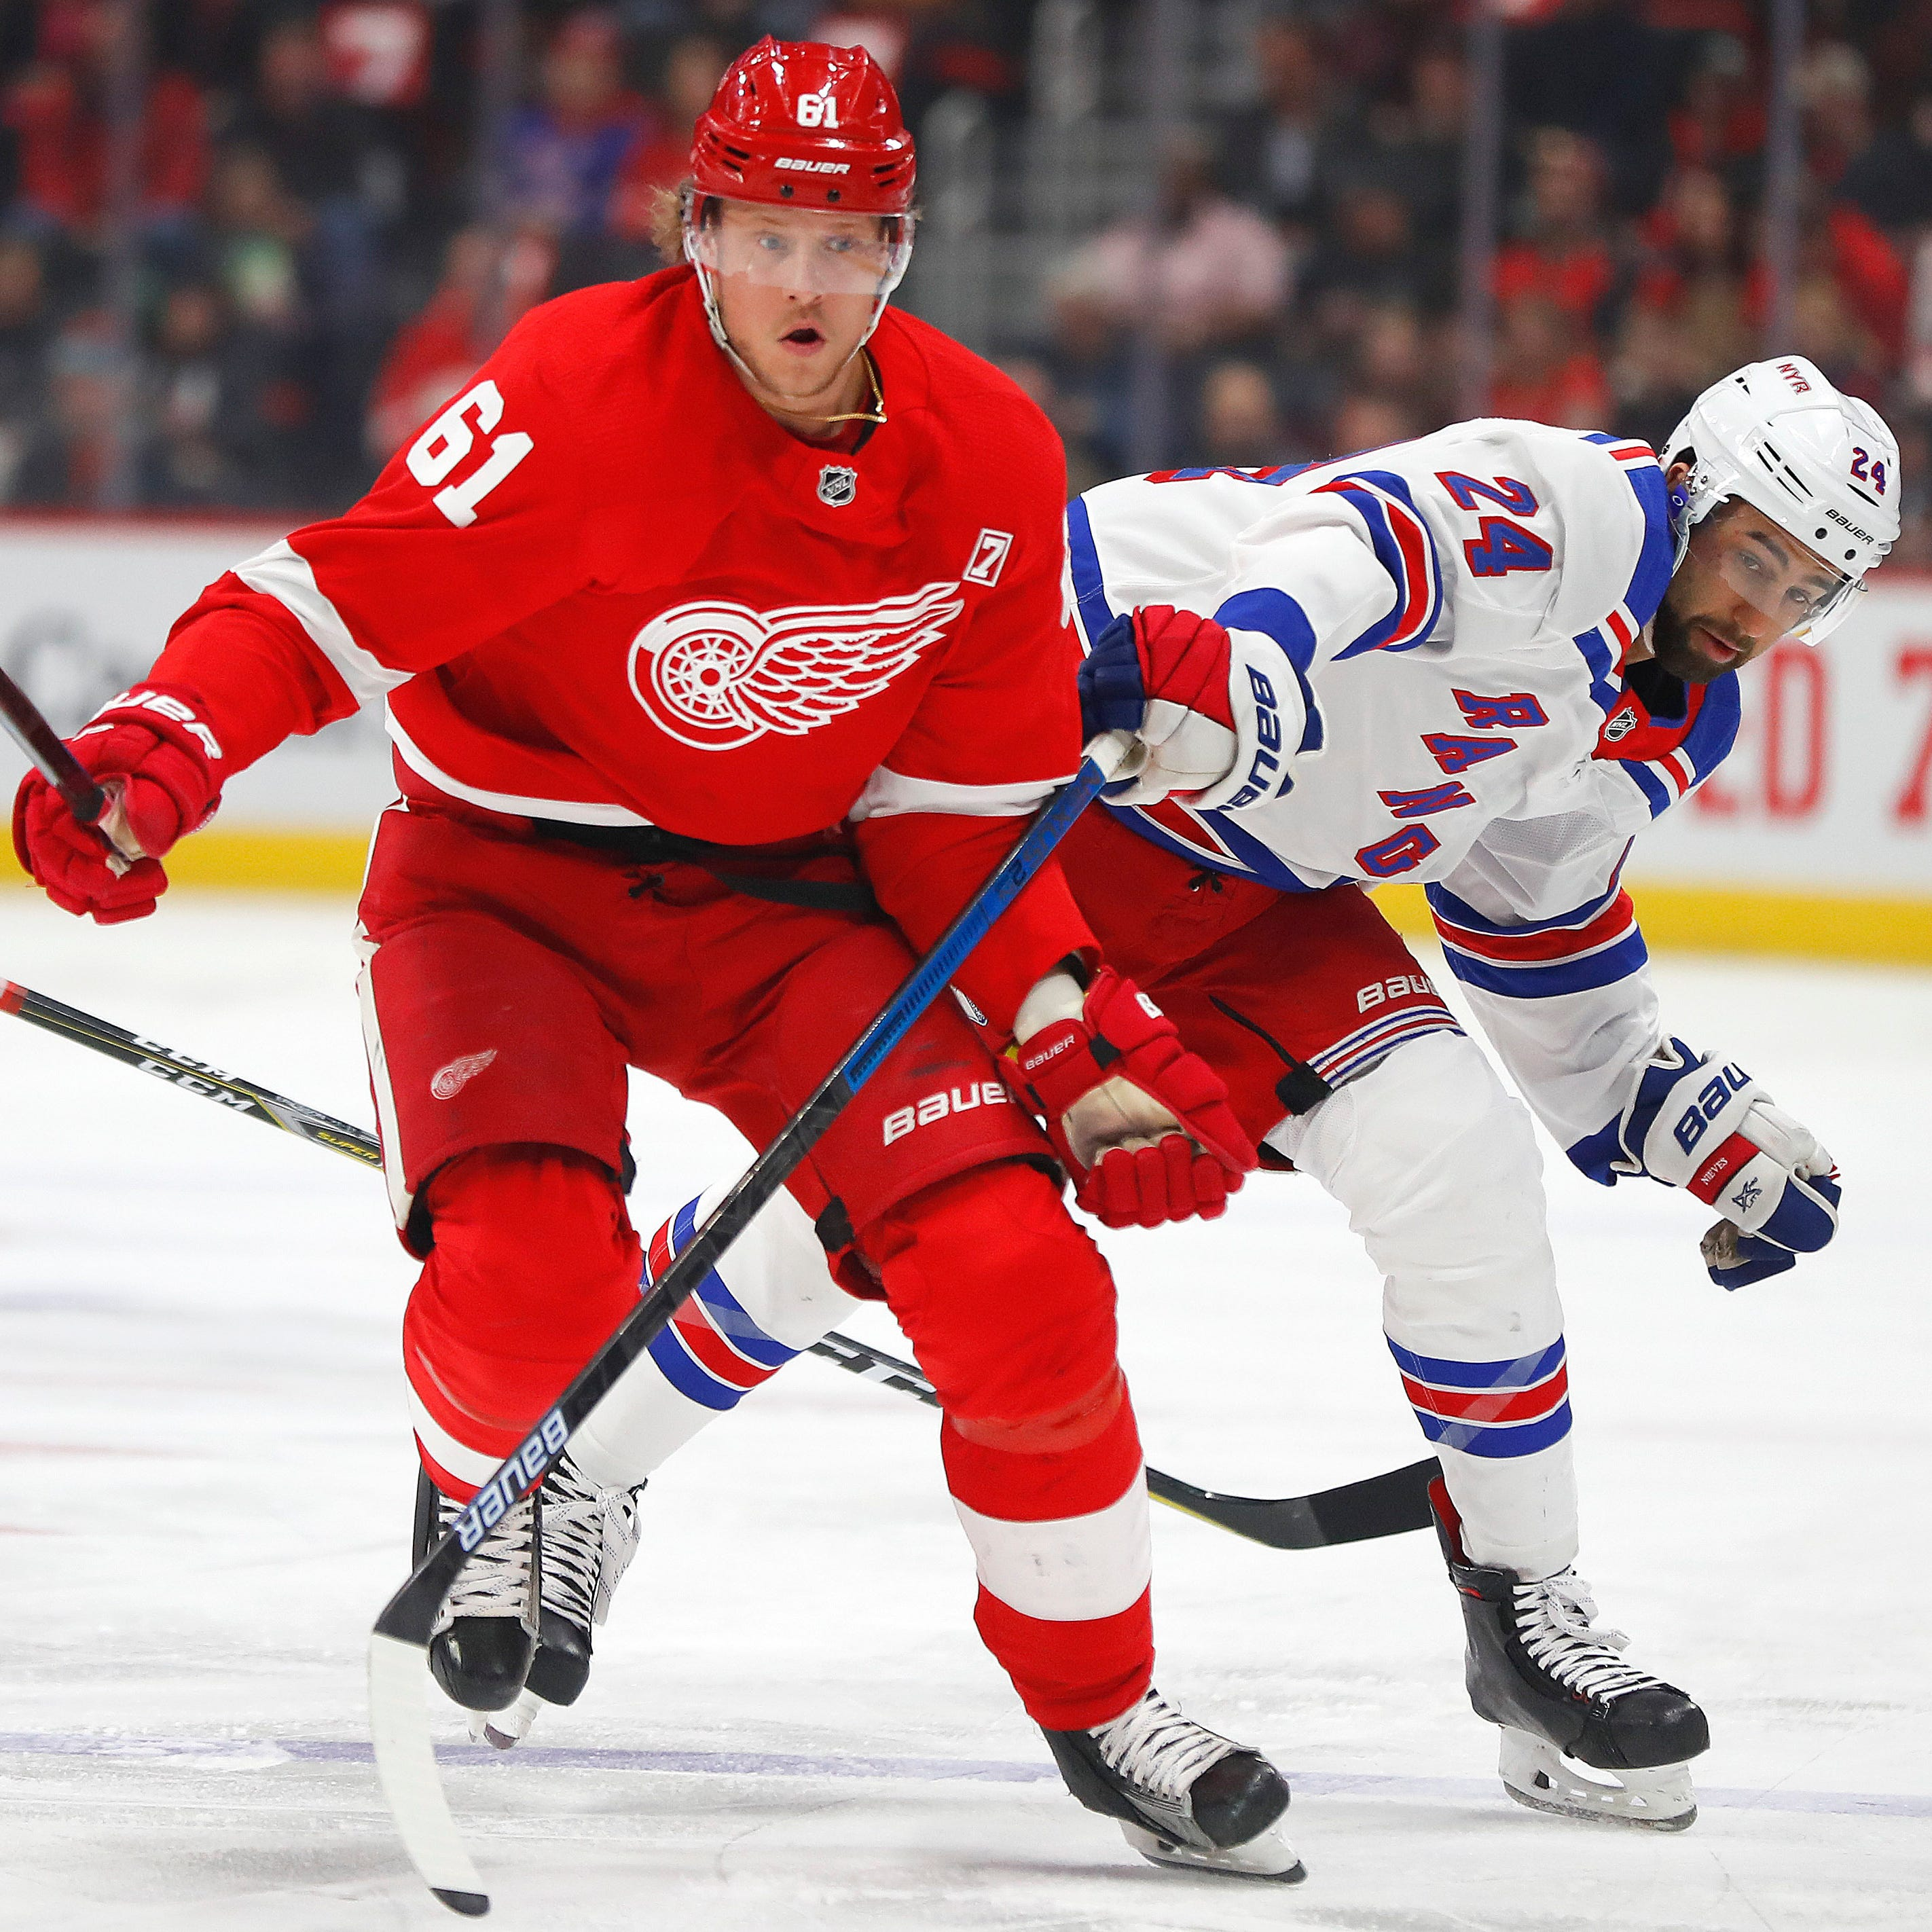 Detroit Red Wings' Jacob de la Rose hospitalized after cardiac episode